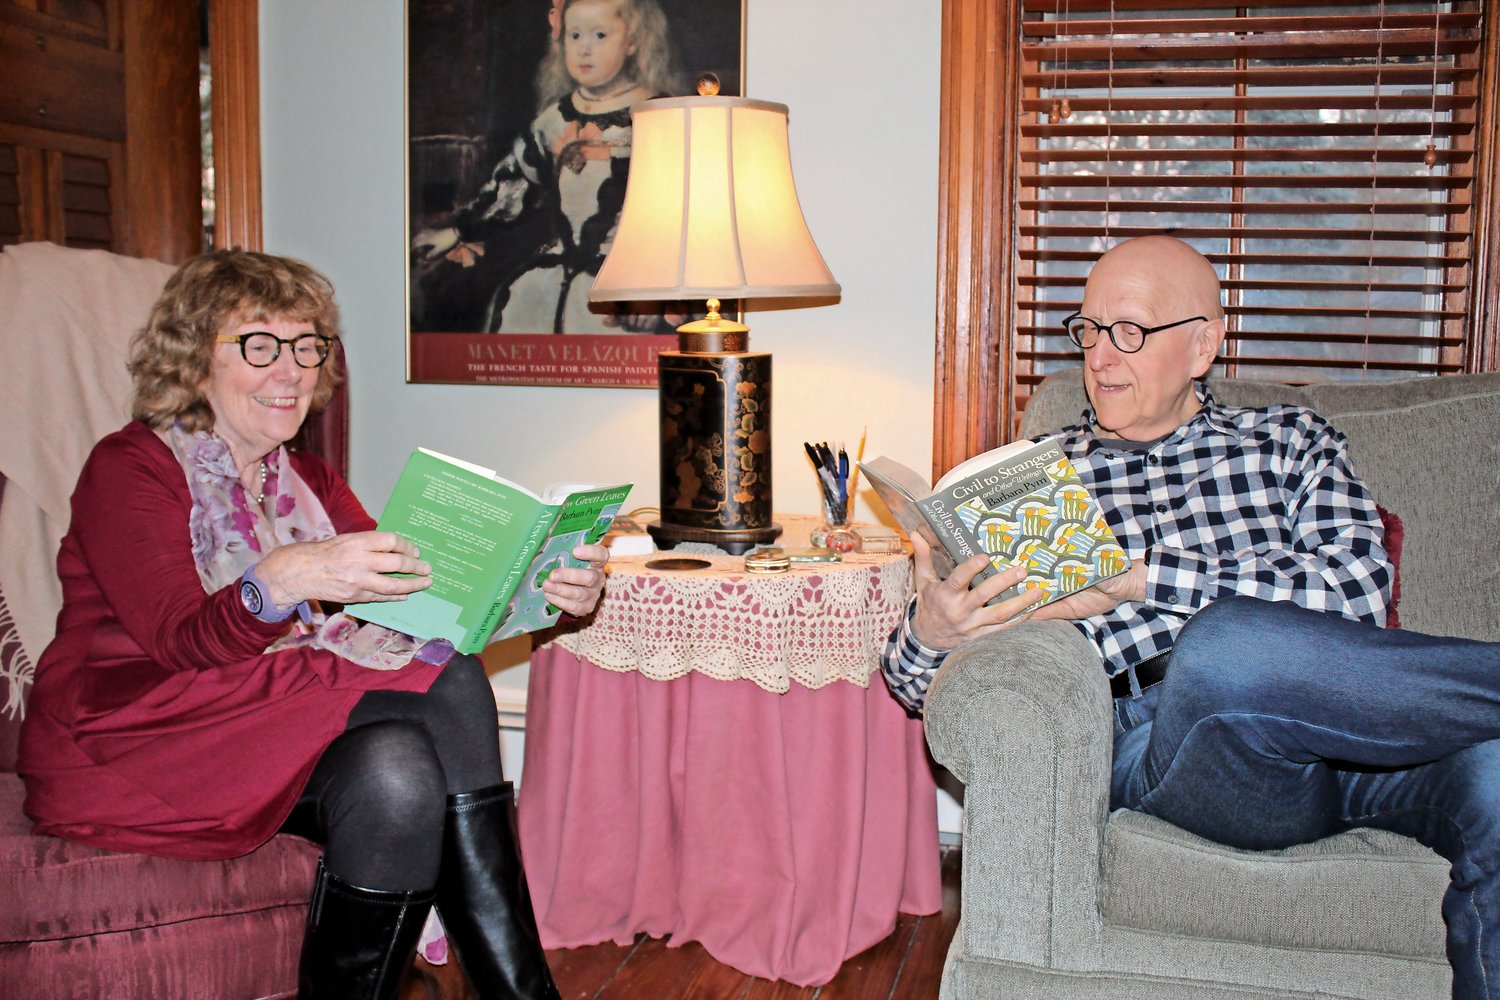 Among the couple's shared interests is a love for British novelist Barbara Pym. Every year they attend meetings of the Barbara Pym Society in Cambridge, Mass. and Oxford, England.